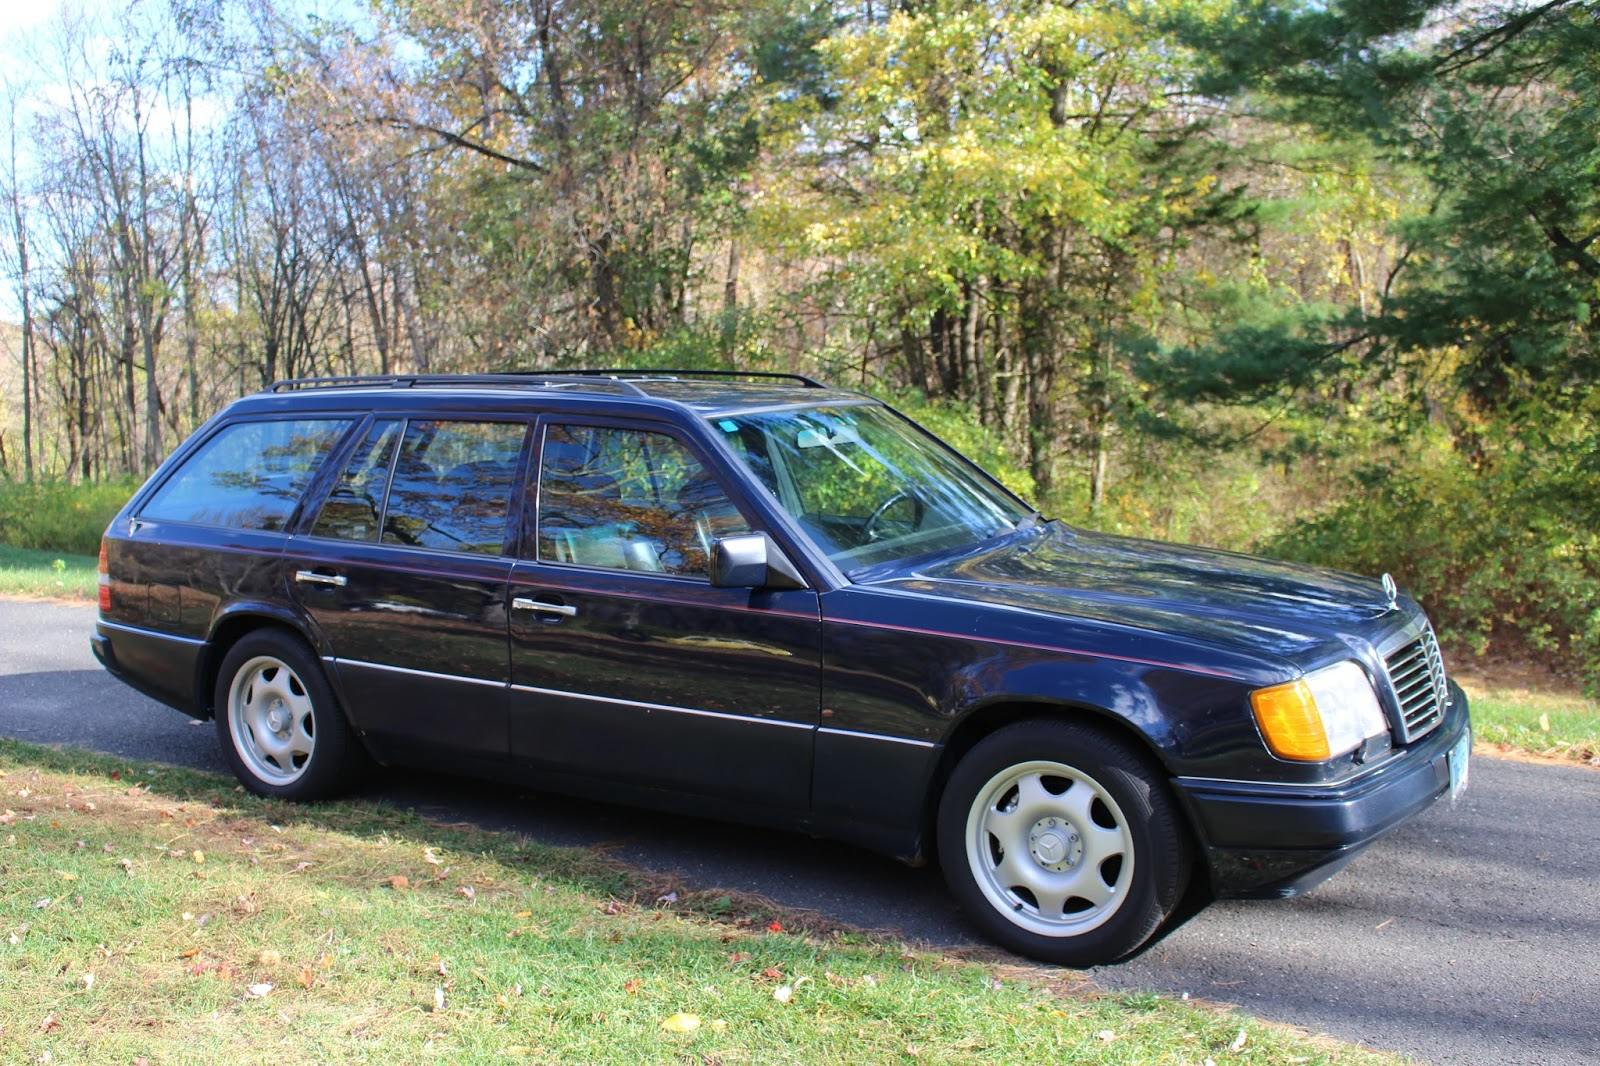 daily turismo amg power 1995 mercedes e320 wagon